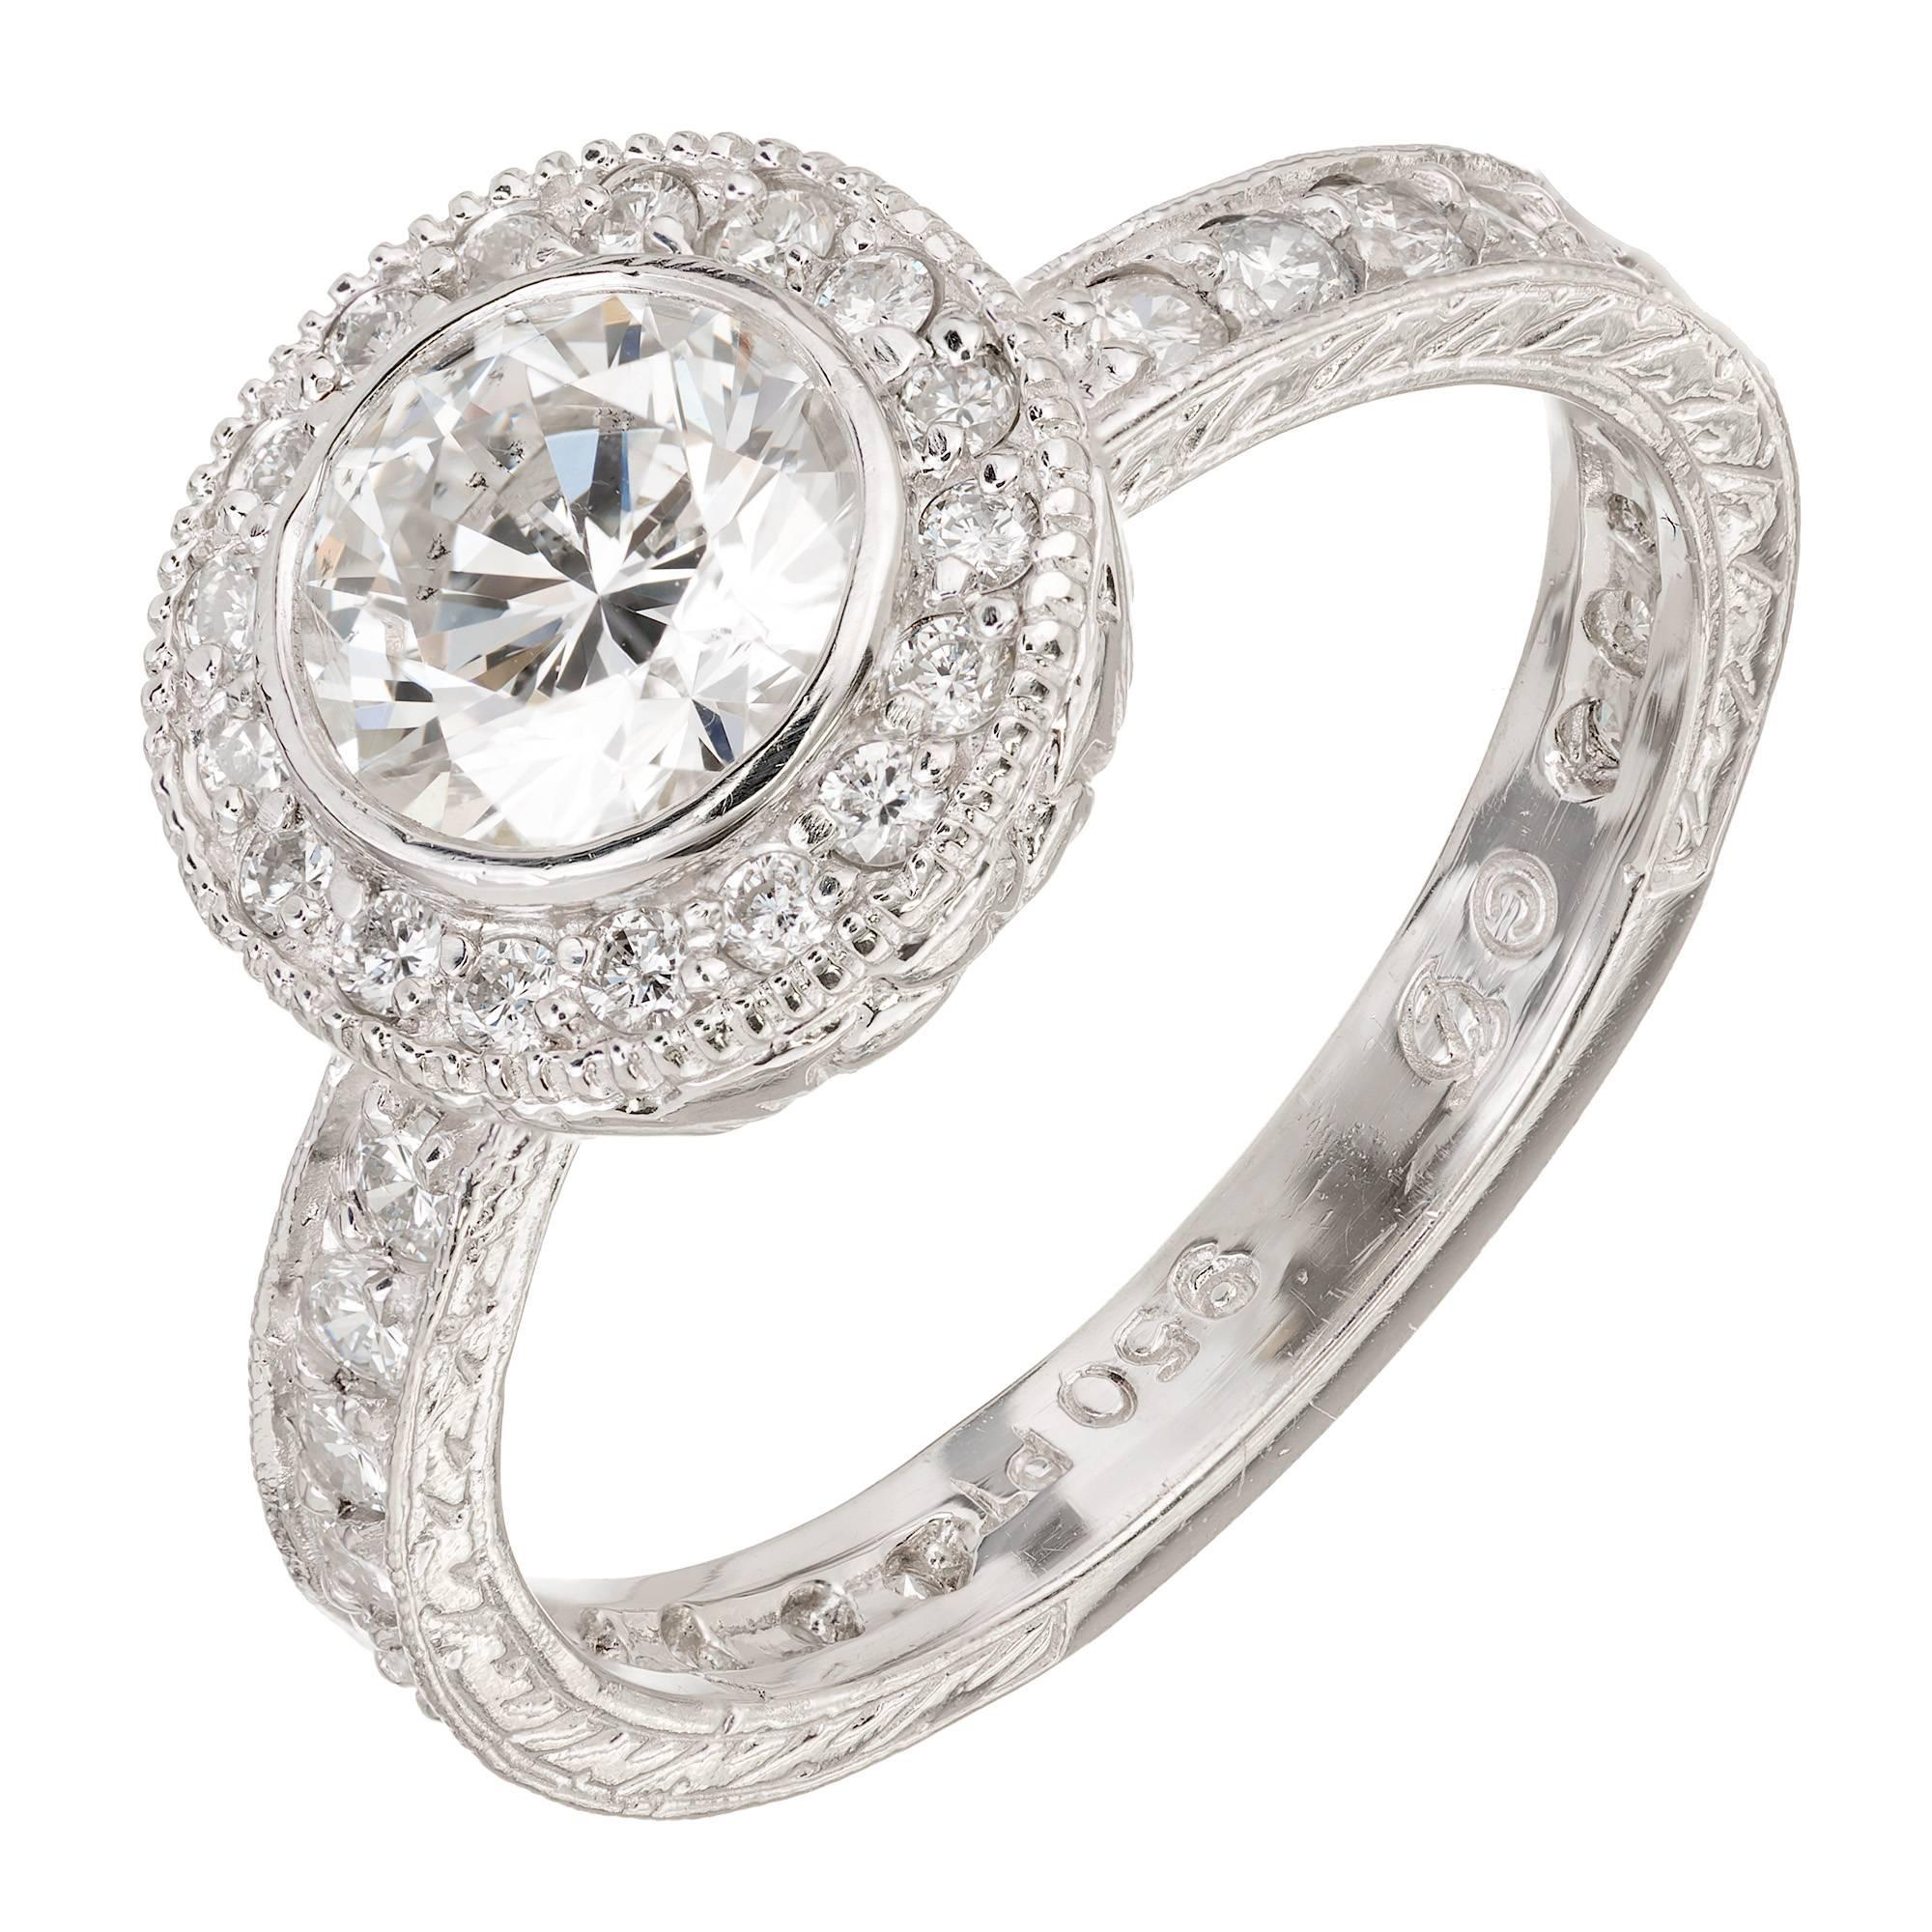 rings engagement cushion ring pav pave micro classic cut solitaire de platinum db